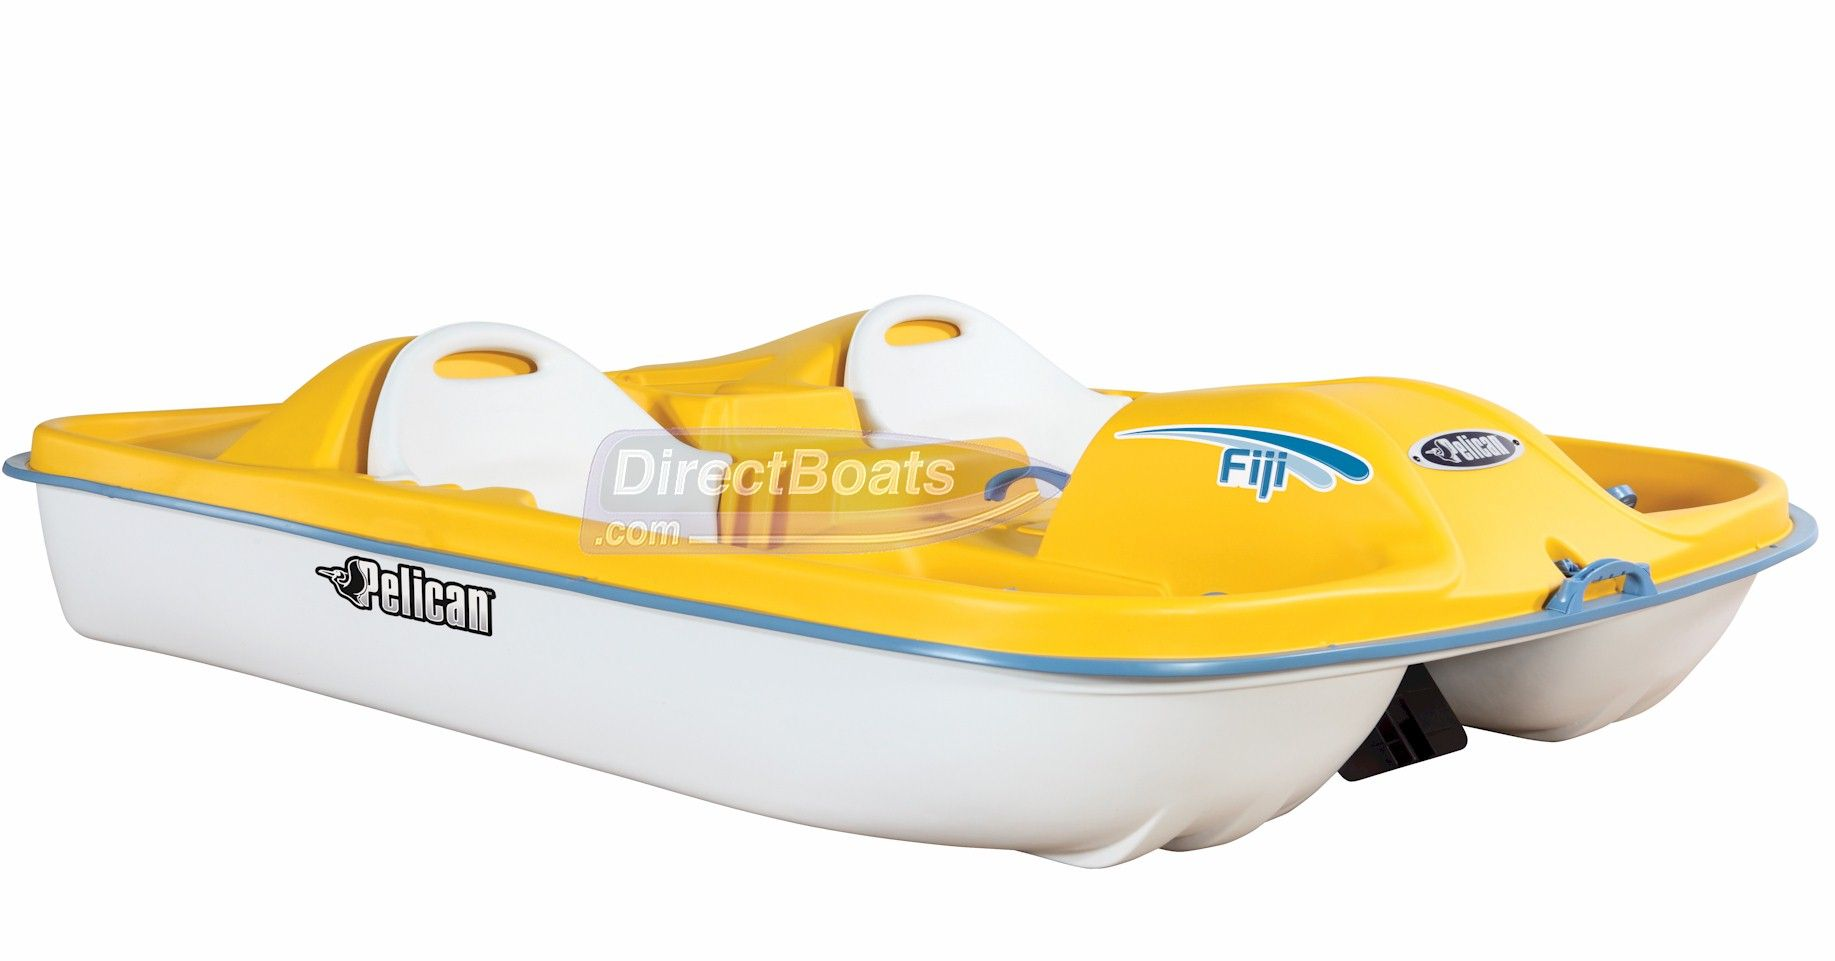 Purchase your very own fiji pedal boat at directboats com http